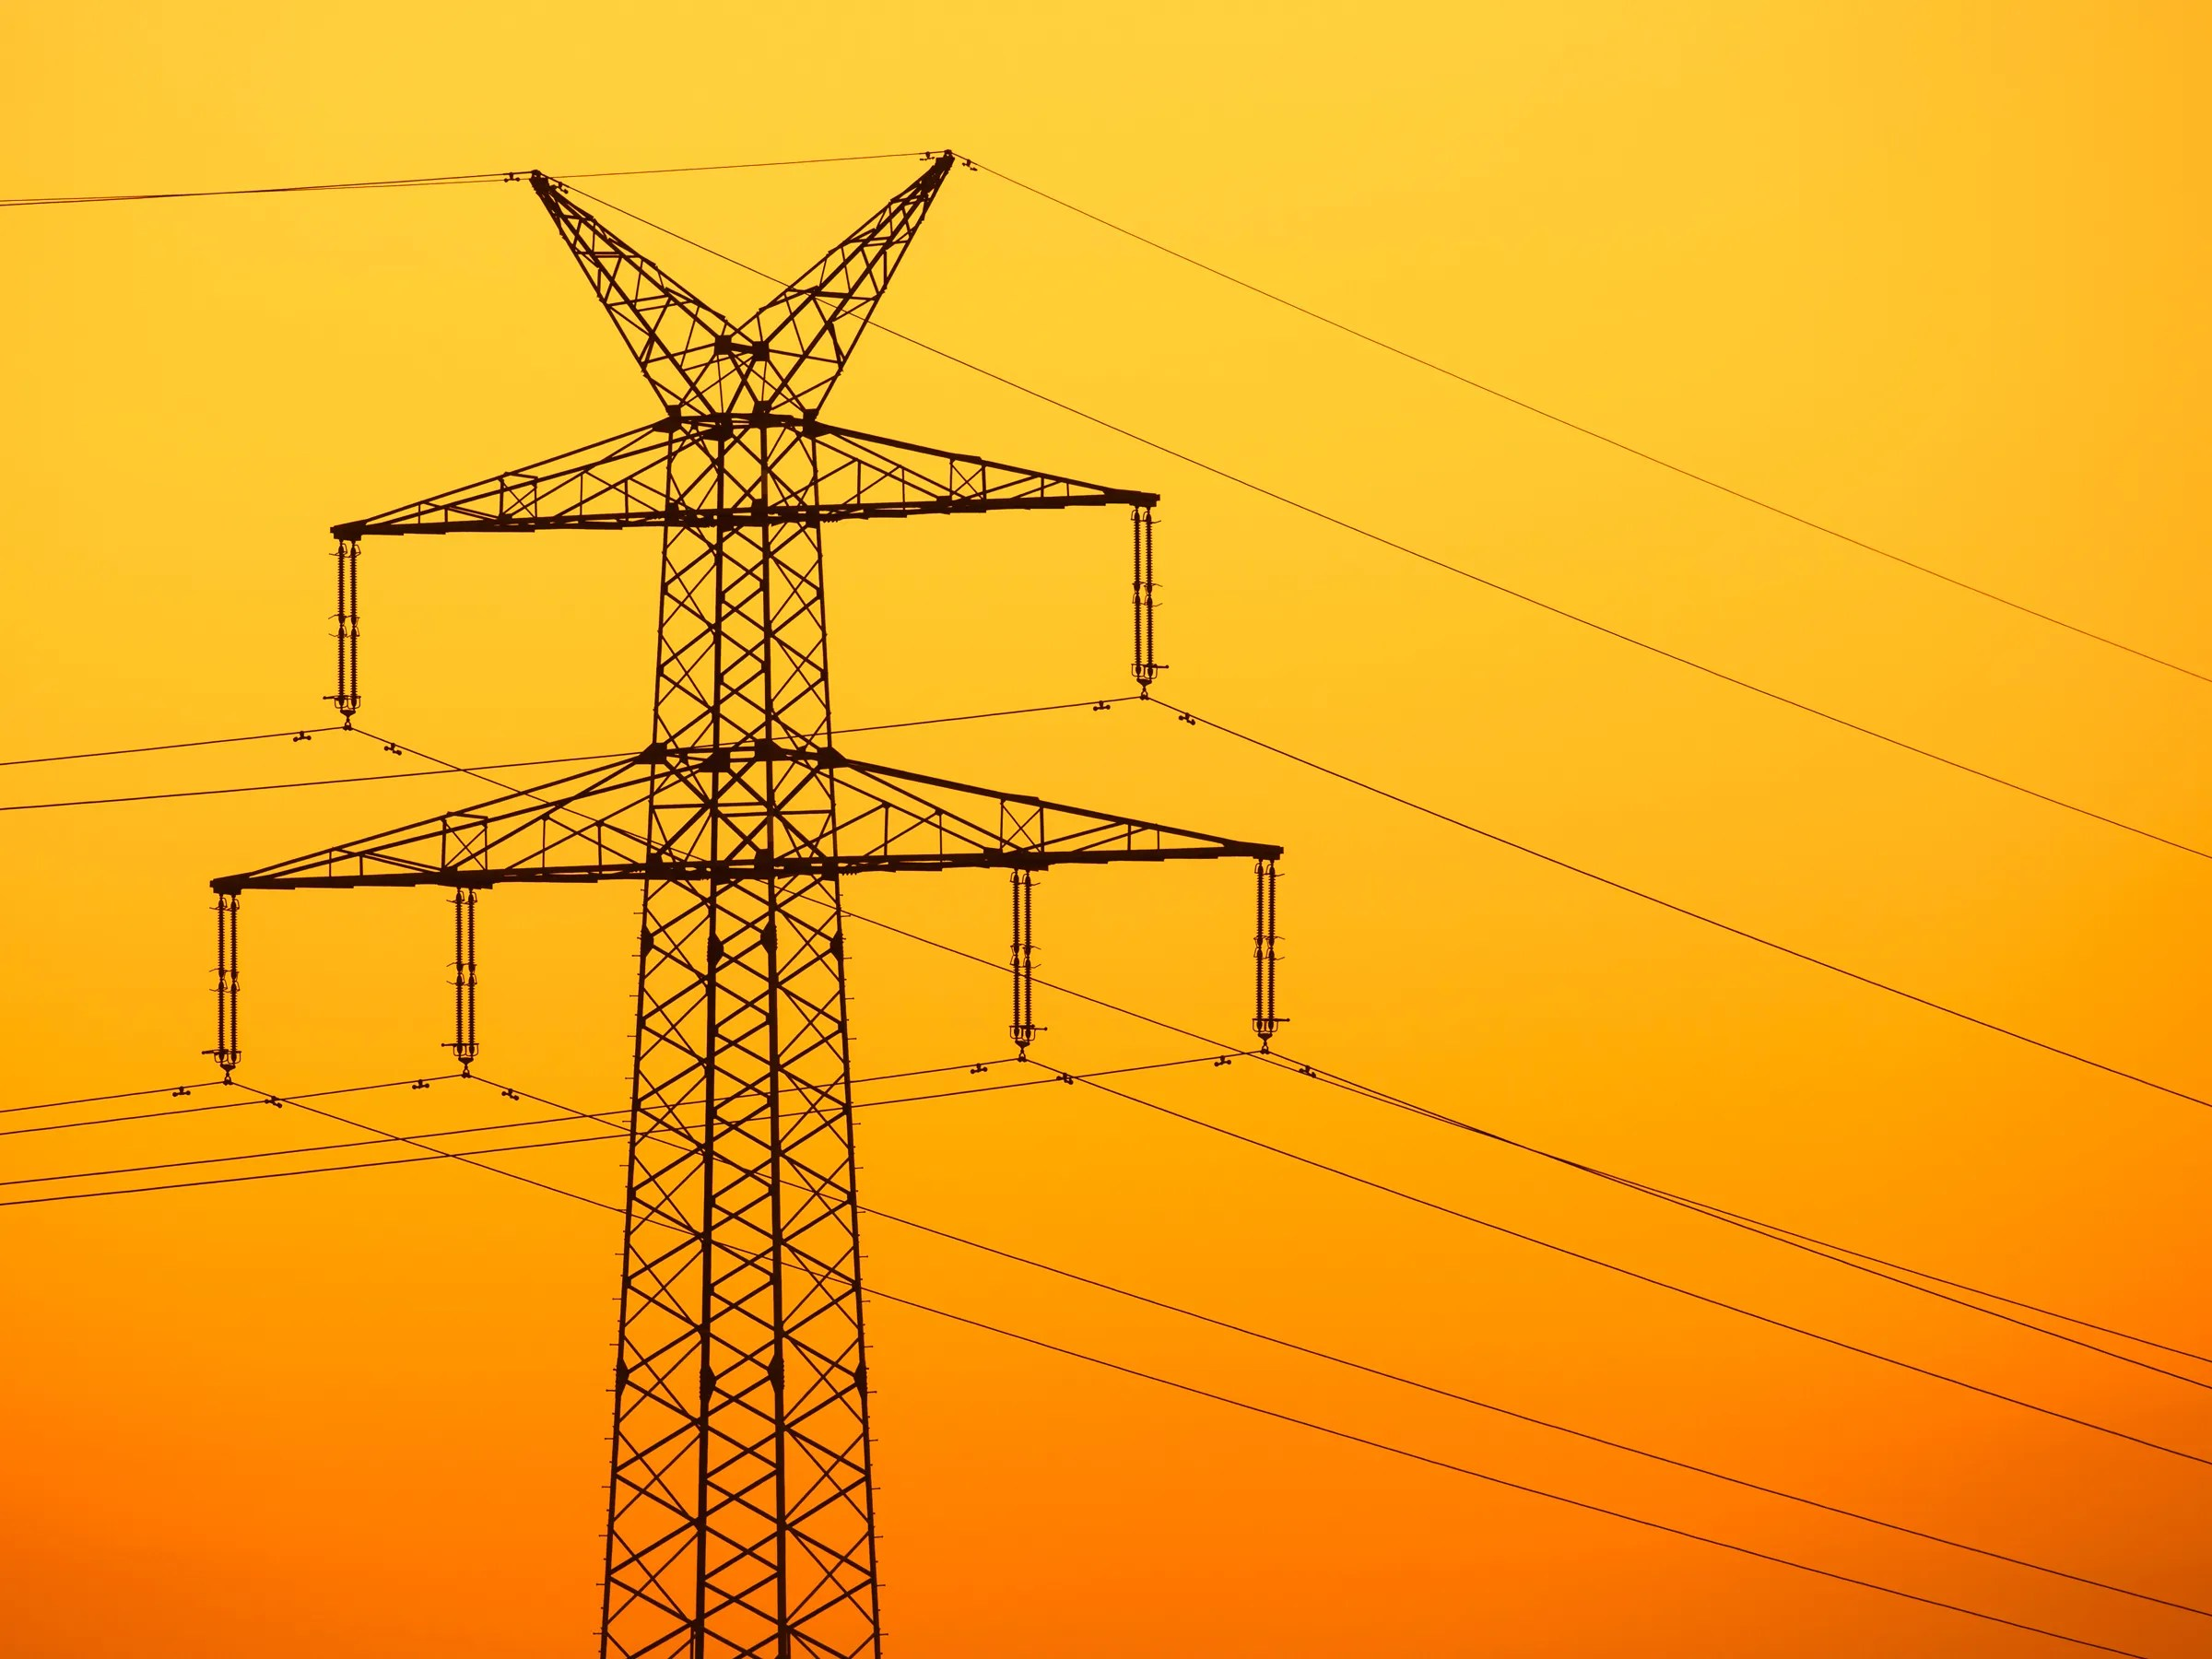 Power Electric Much Of The Us Electric Grid Could Go The Way Of The Landline